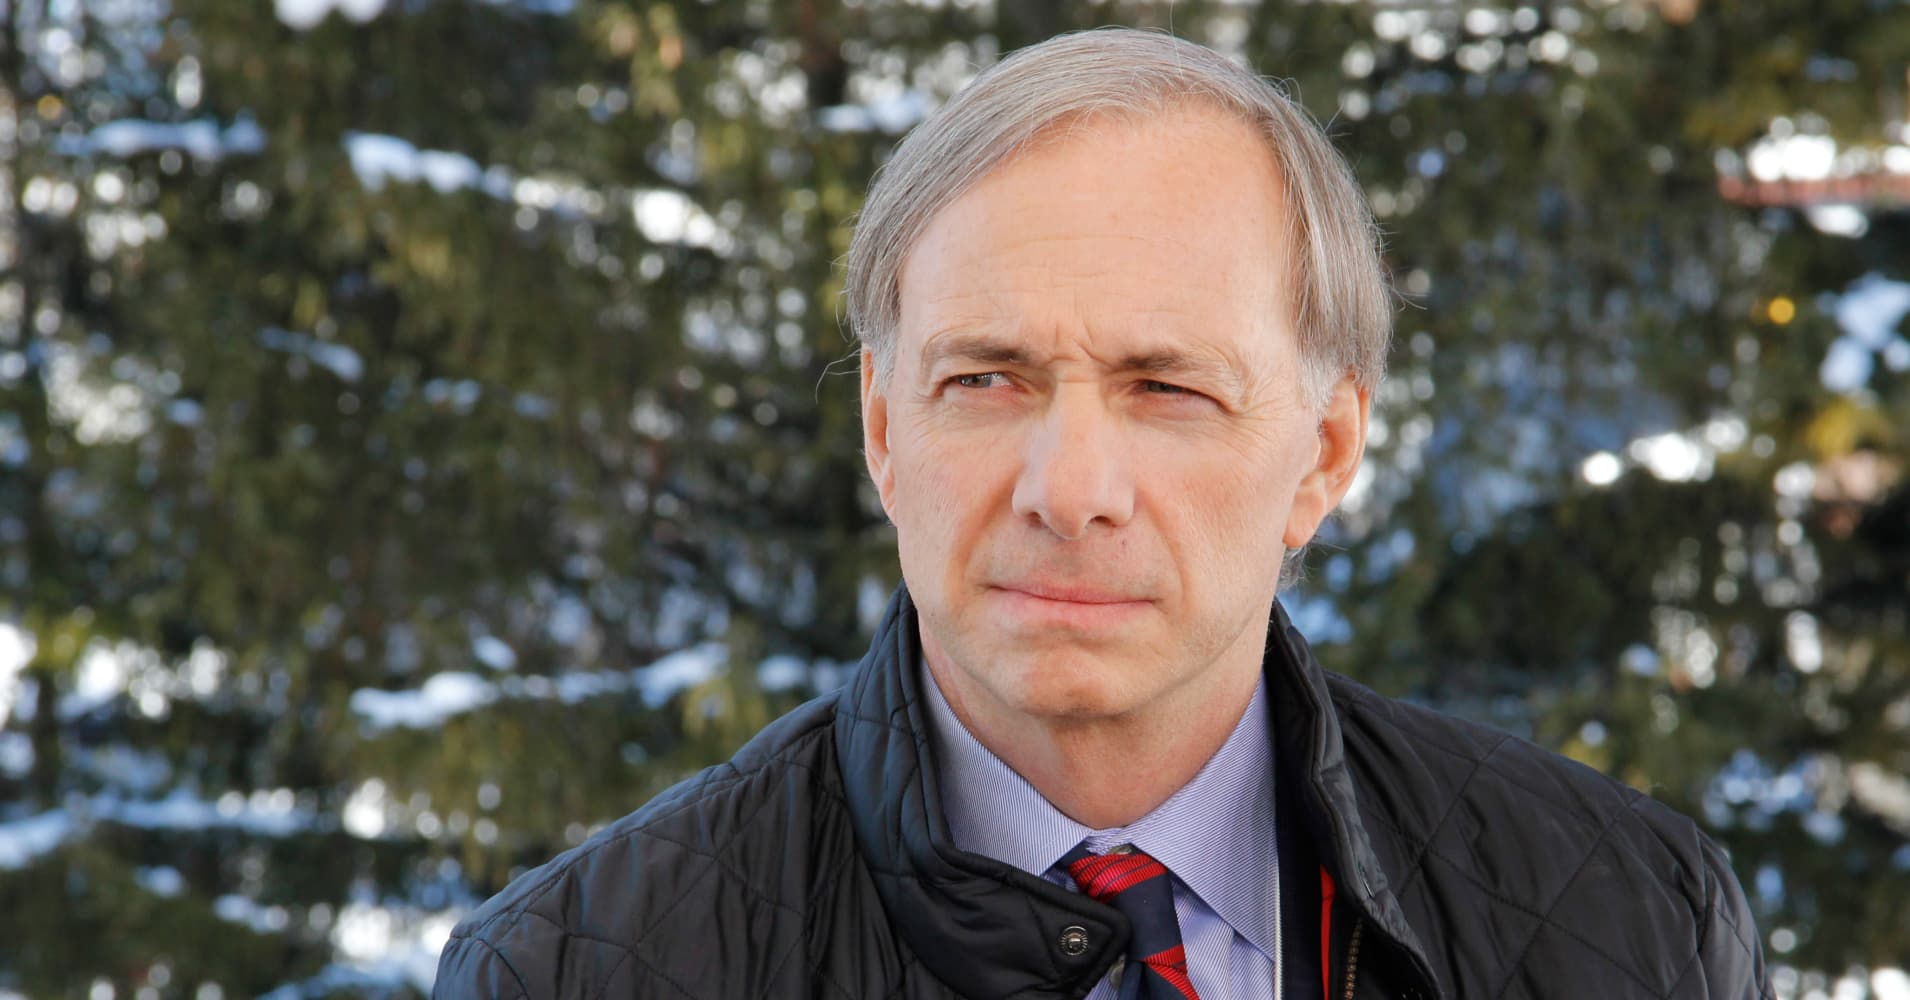 Ray Dalio speaks with CNBC at the 2014 WEF in Davos, Switzerland.